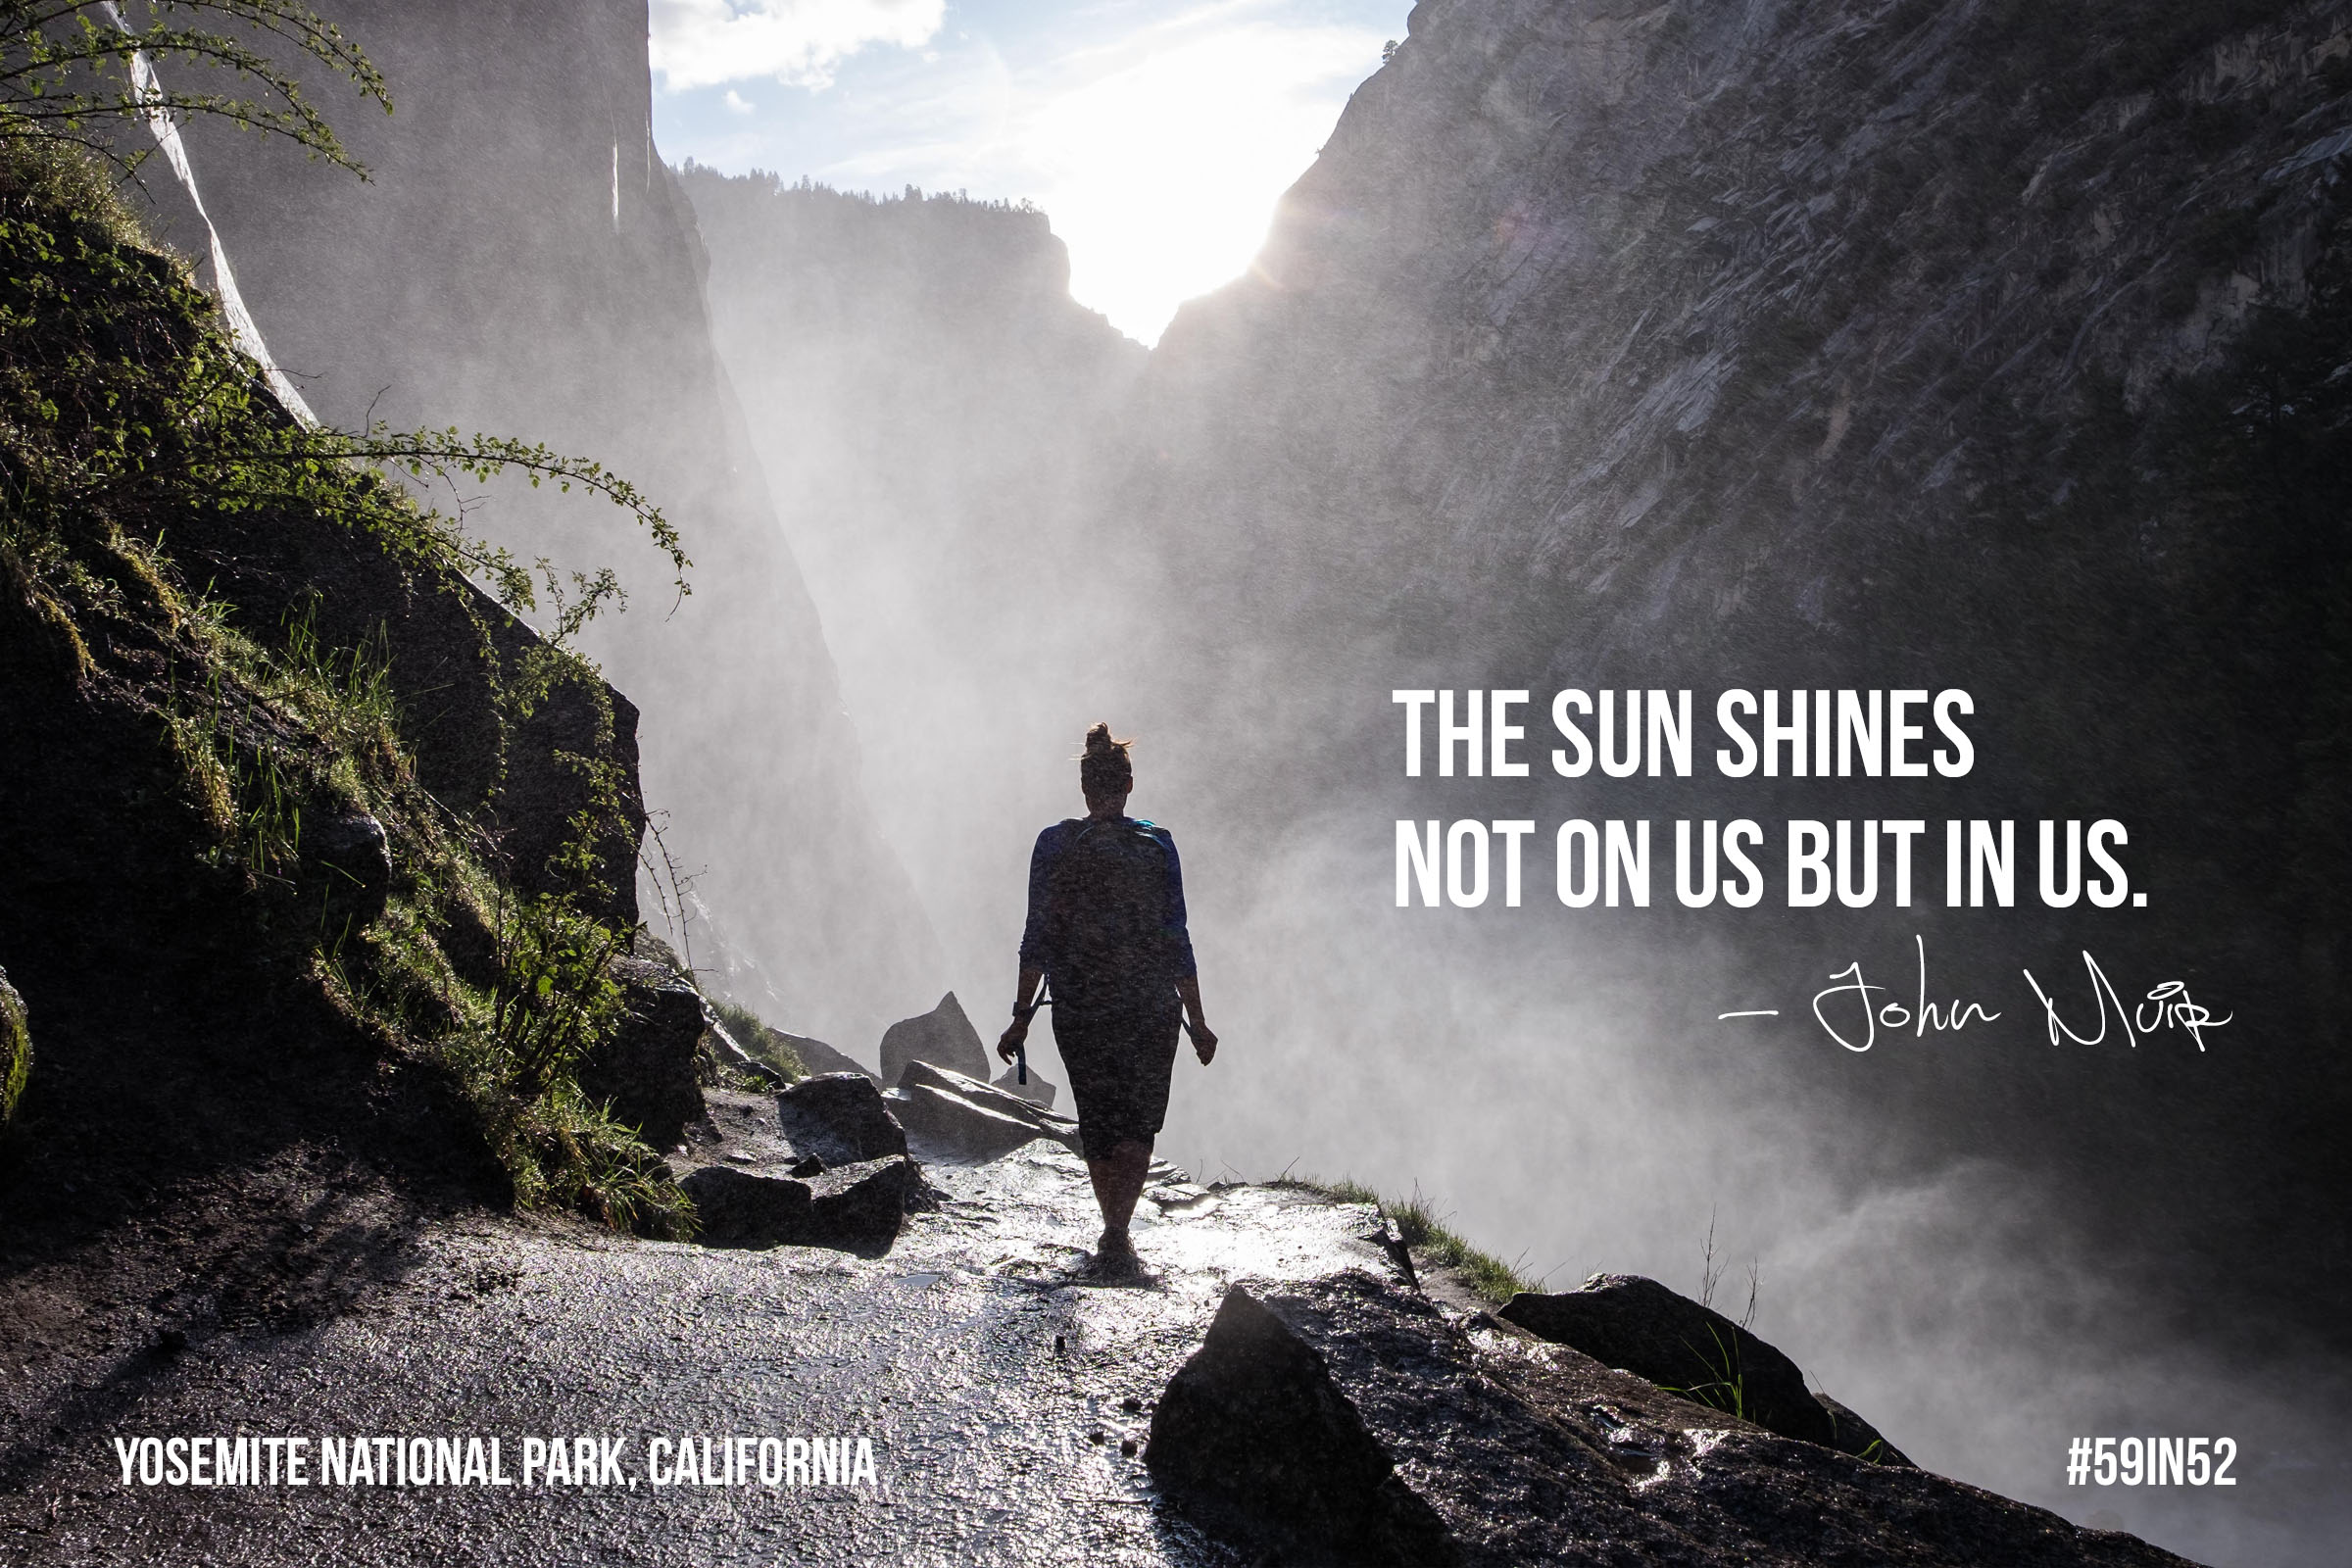 """The sun shines not on us but in us."" - John Muir"